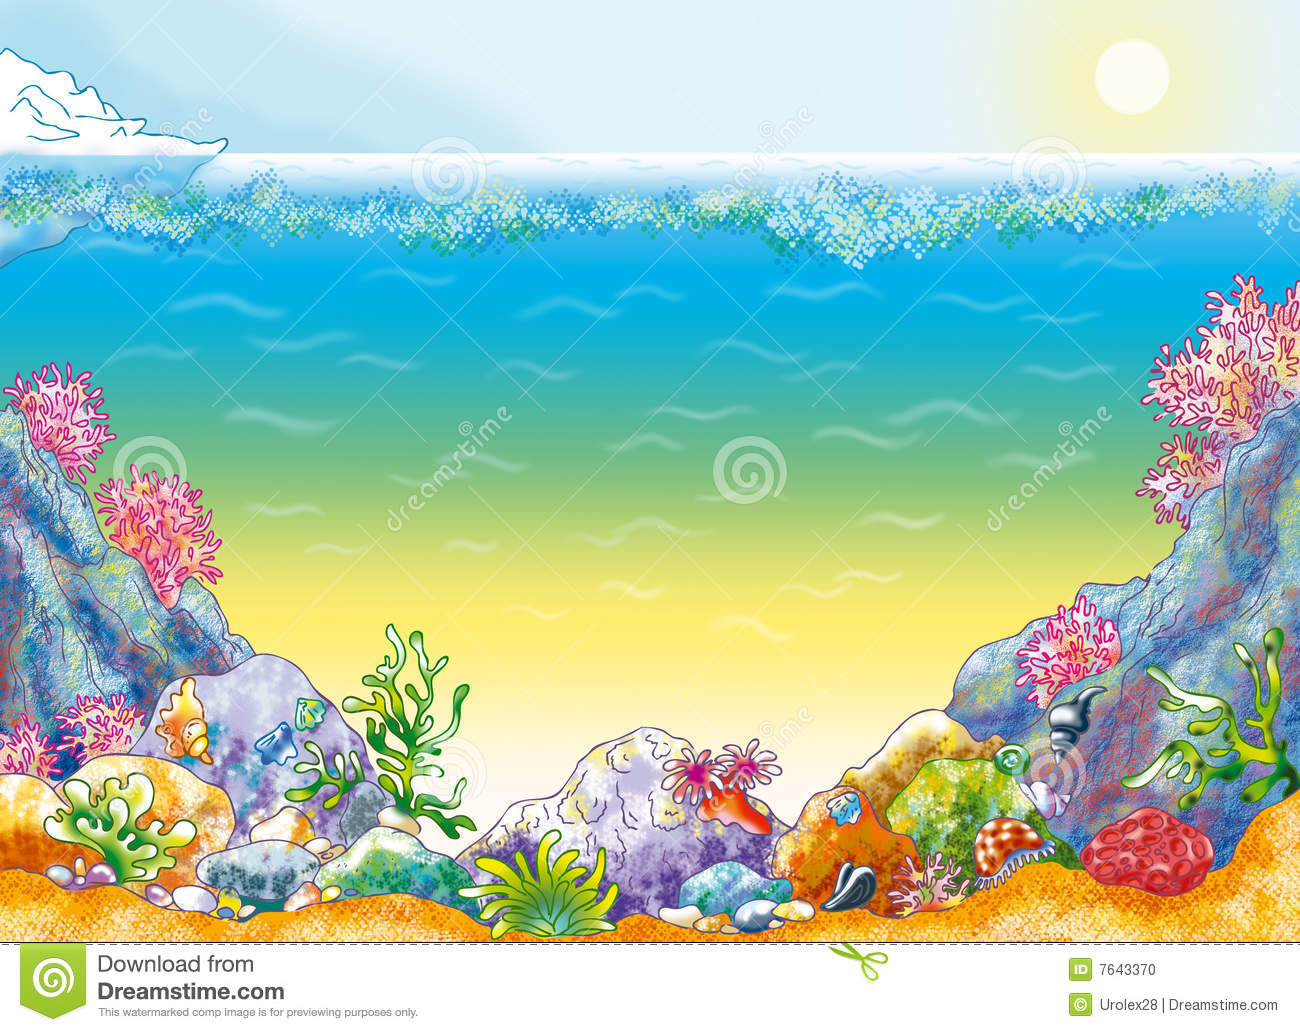 Cartoon Ocean Floor Background Images & Pictures - Becuo